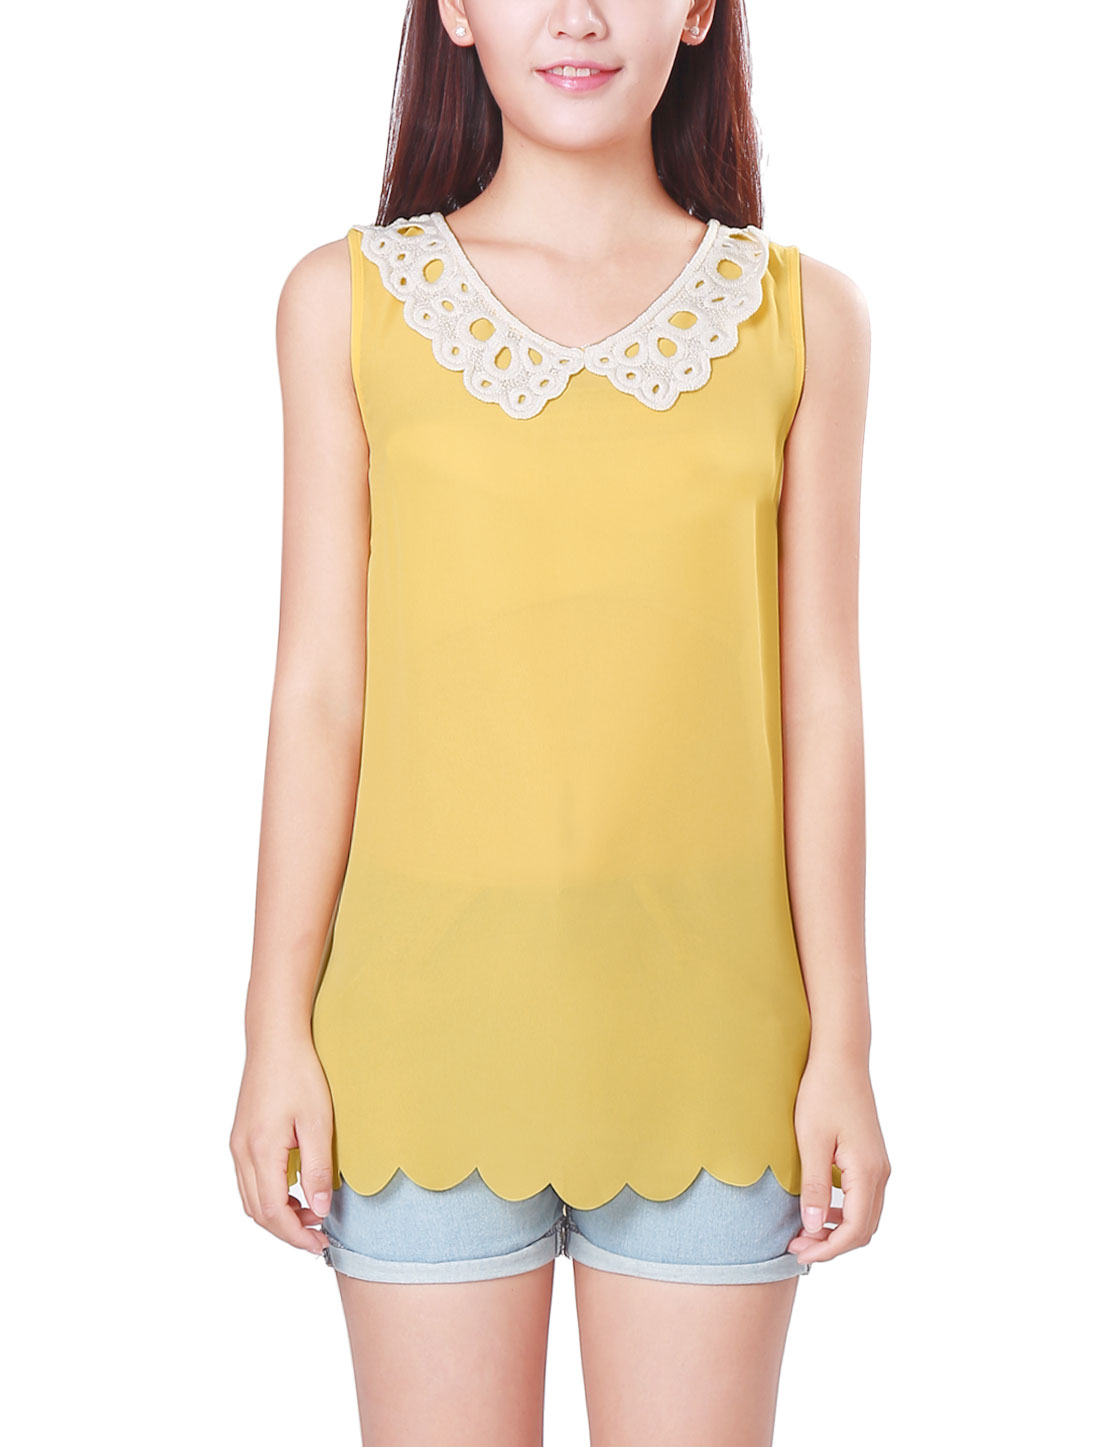 Ladies Crochet Peter Pan Collar Sleeveless Yellow Casual Tops XS